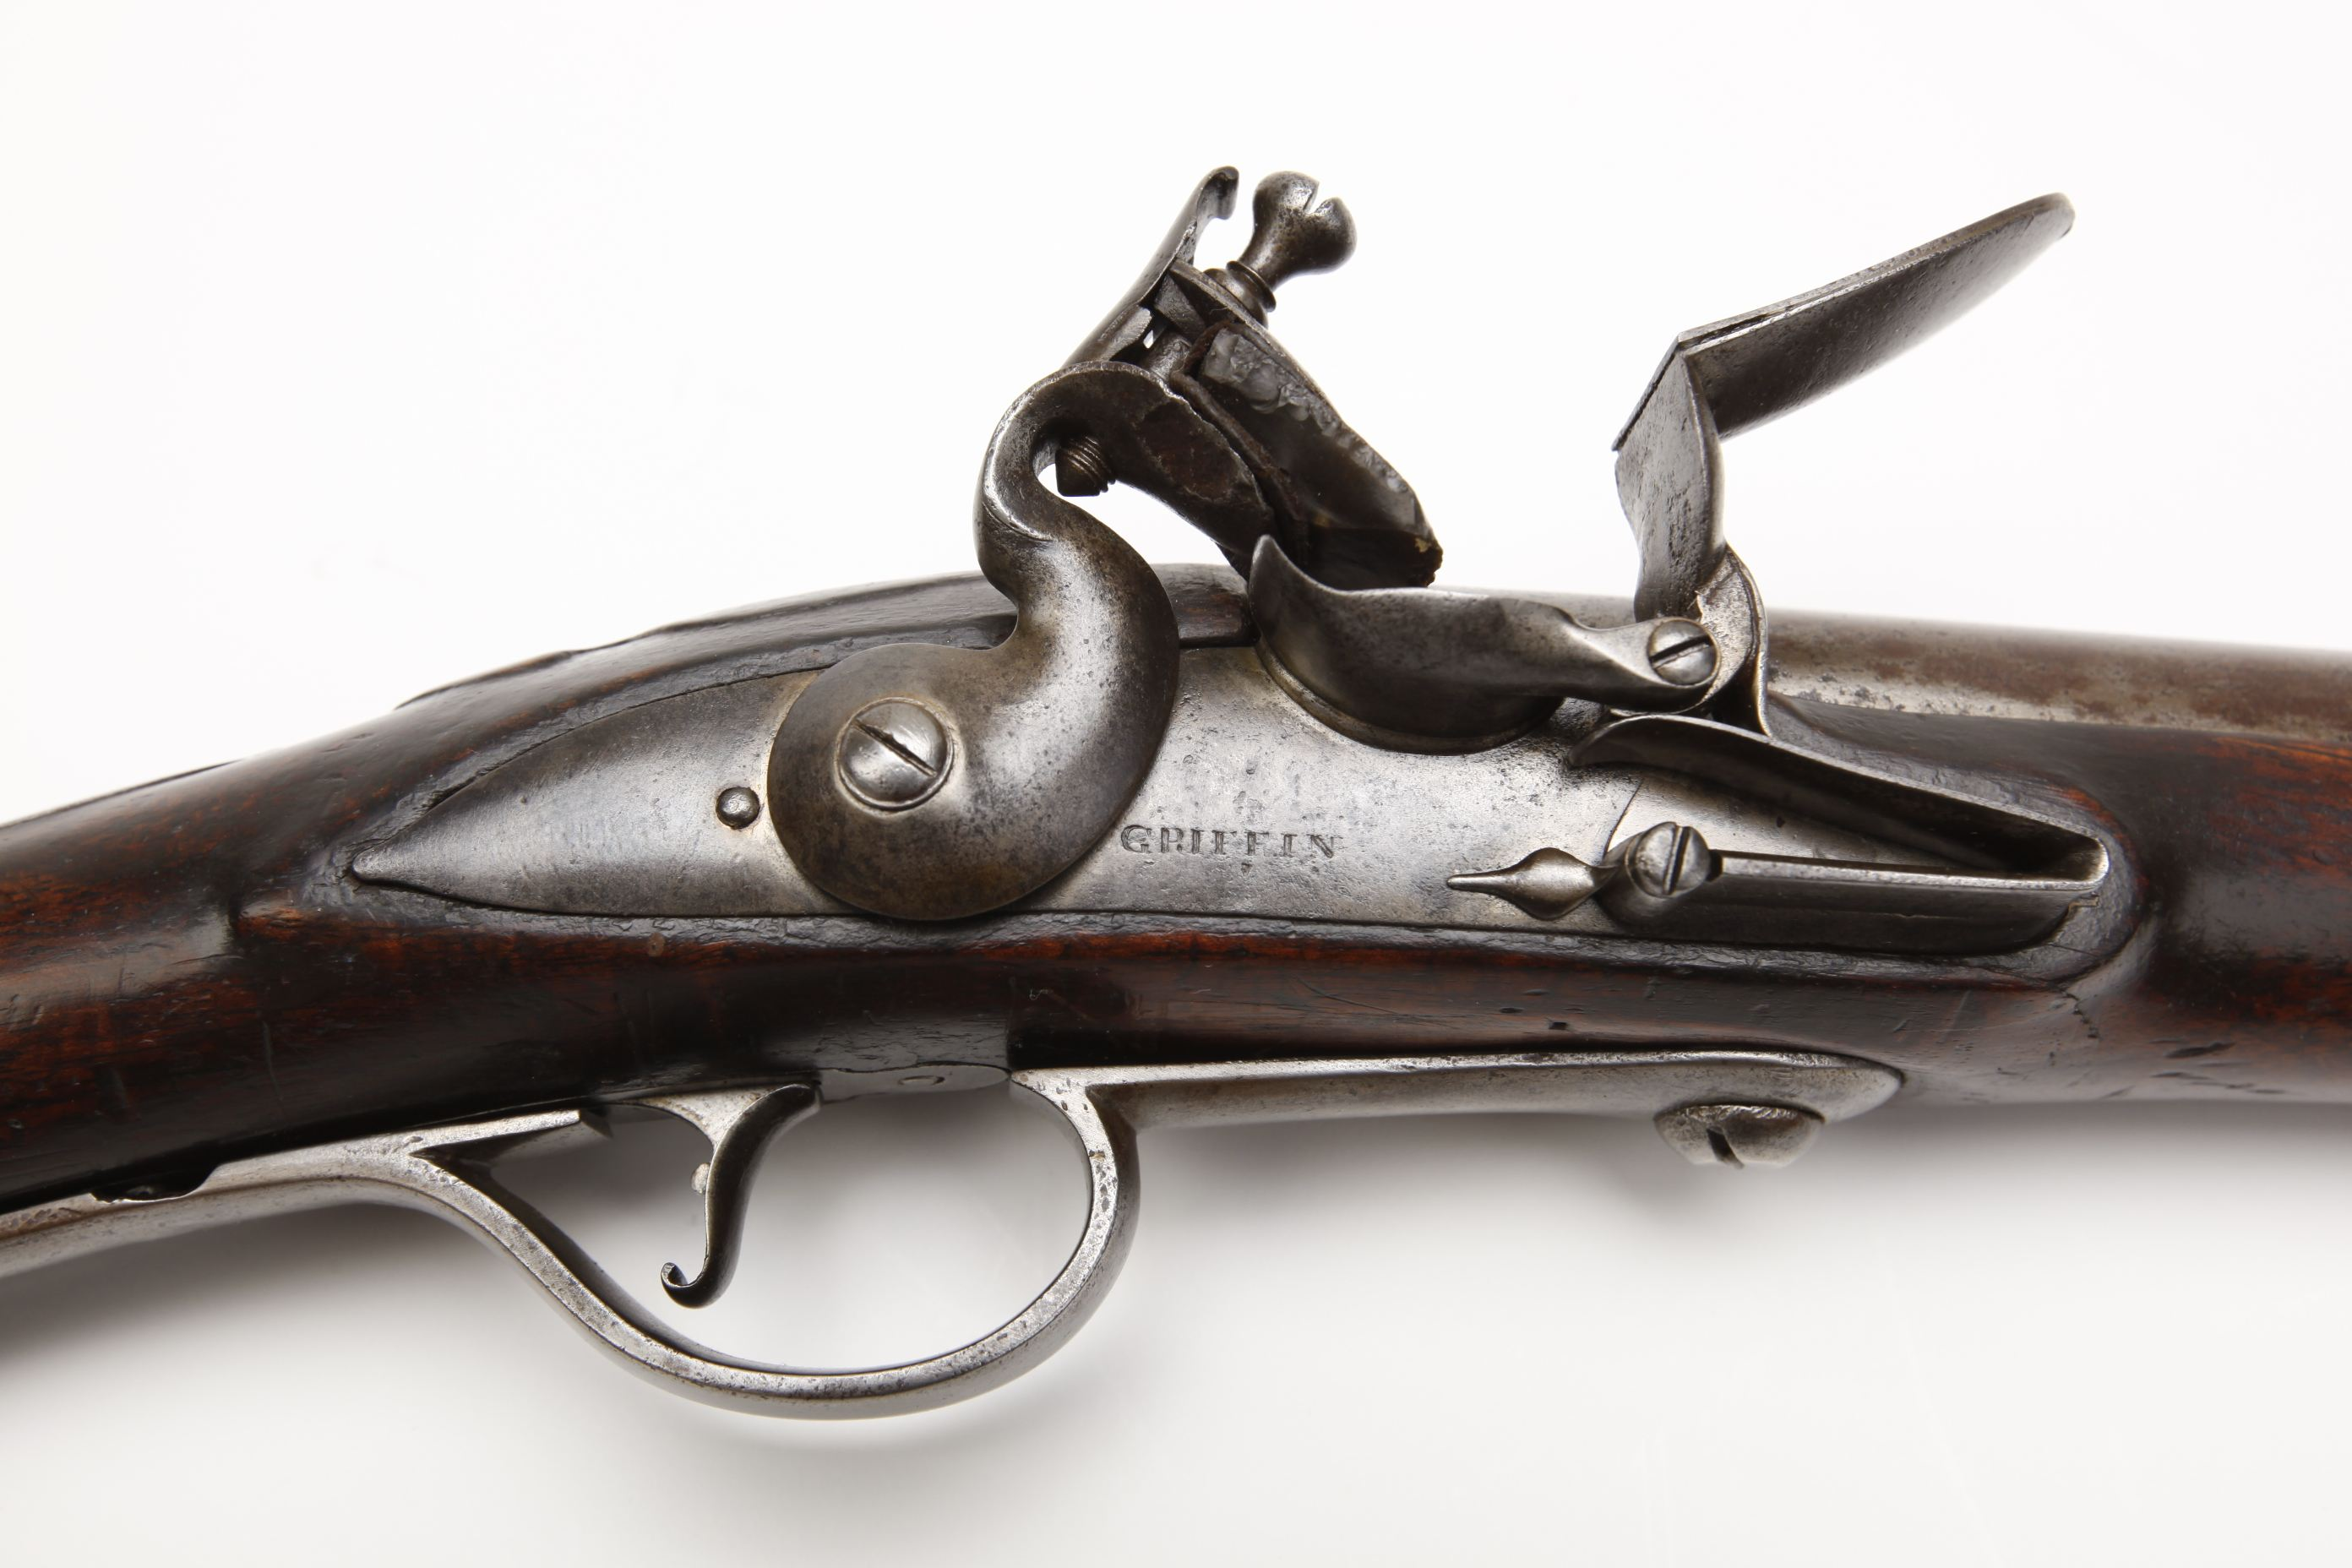 Griffin Breechloading Flintlock Musket